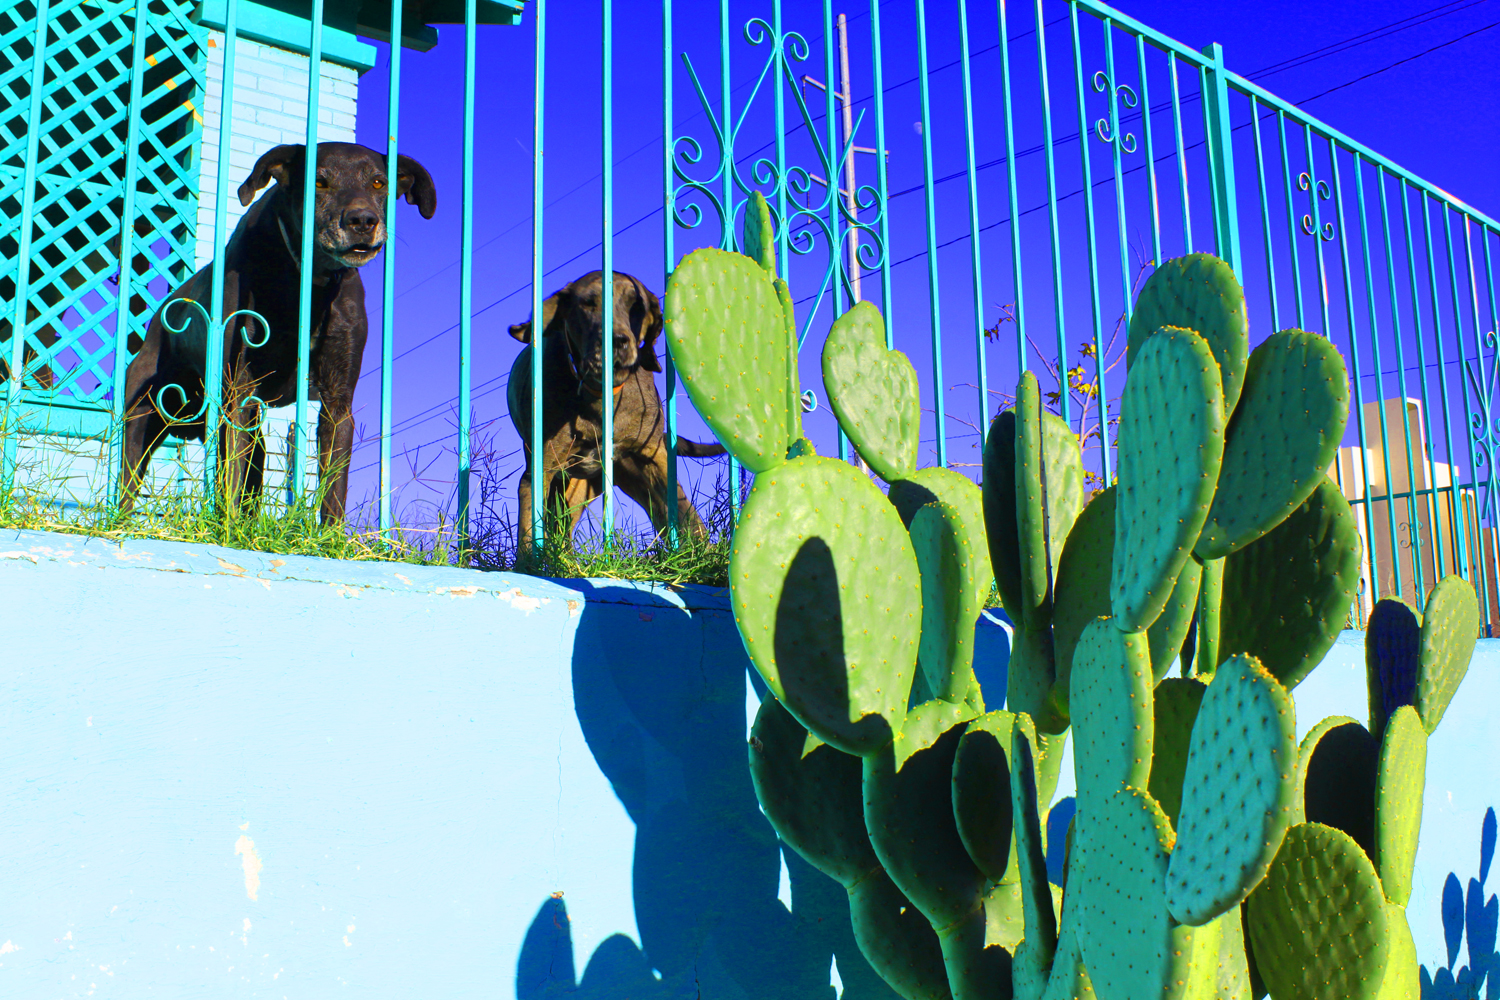 Noisy dogs and cactus © Jud Burgess